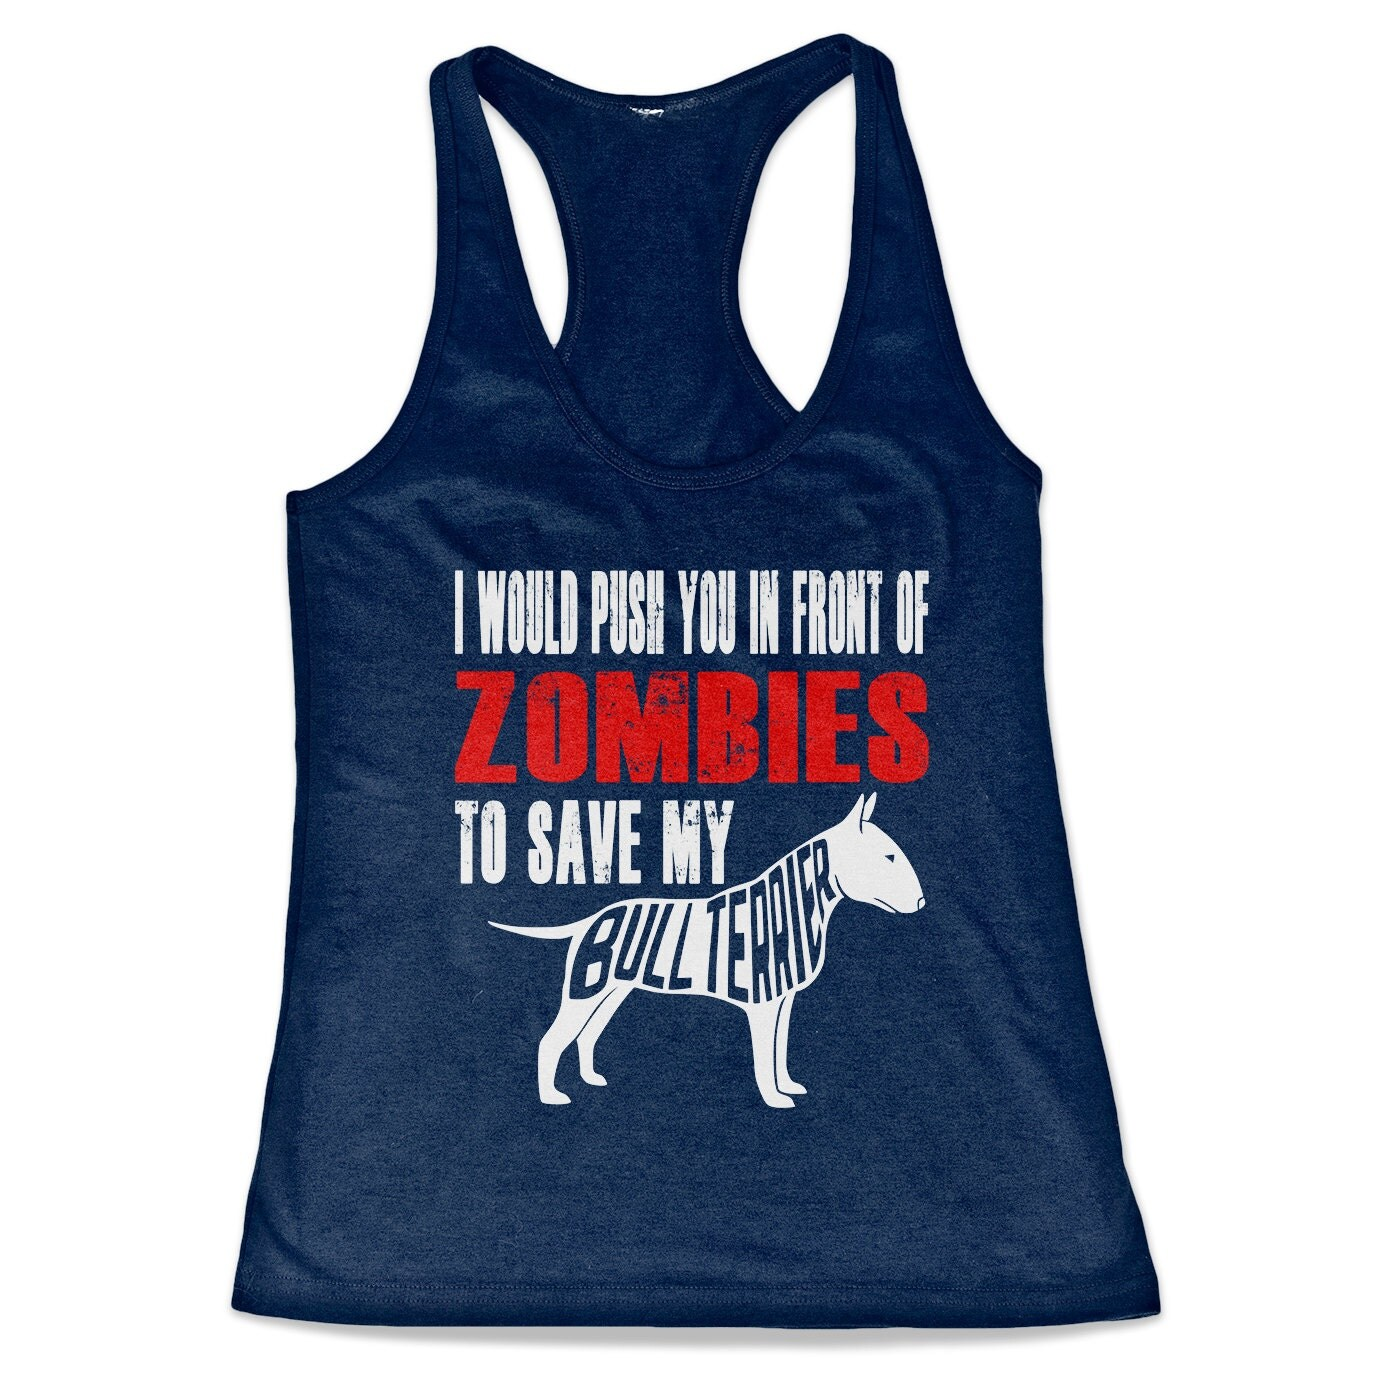 Bull Terrier  Tank Top - I Would Push You In Front Of Zombies To Save My Bull Terrier  Racerback Tank Top